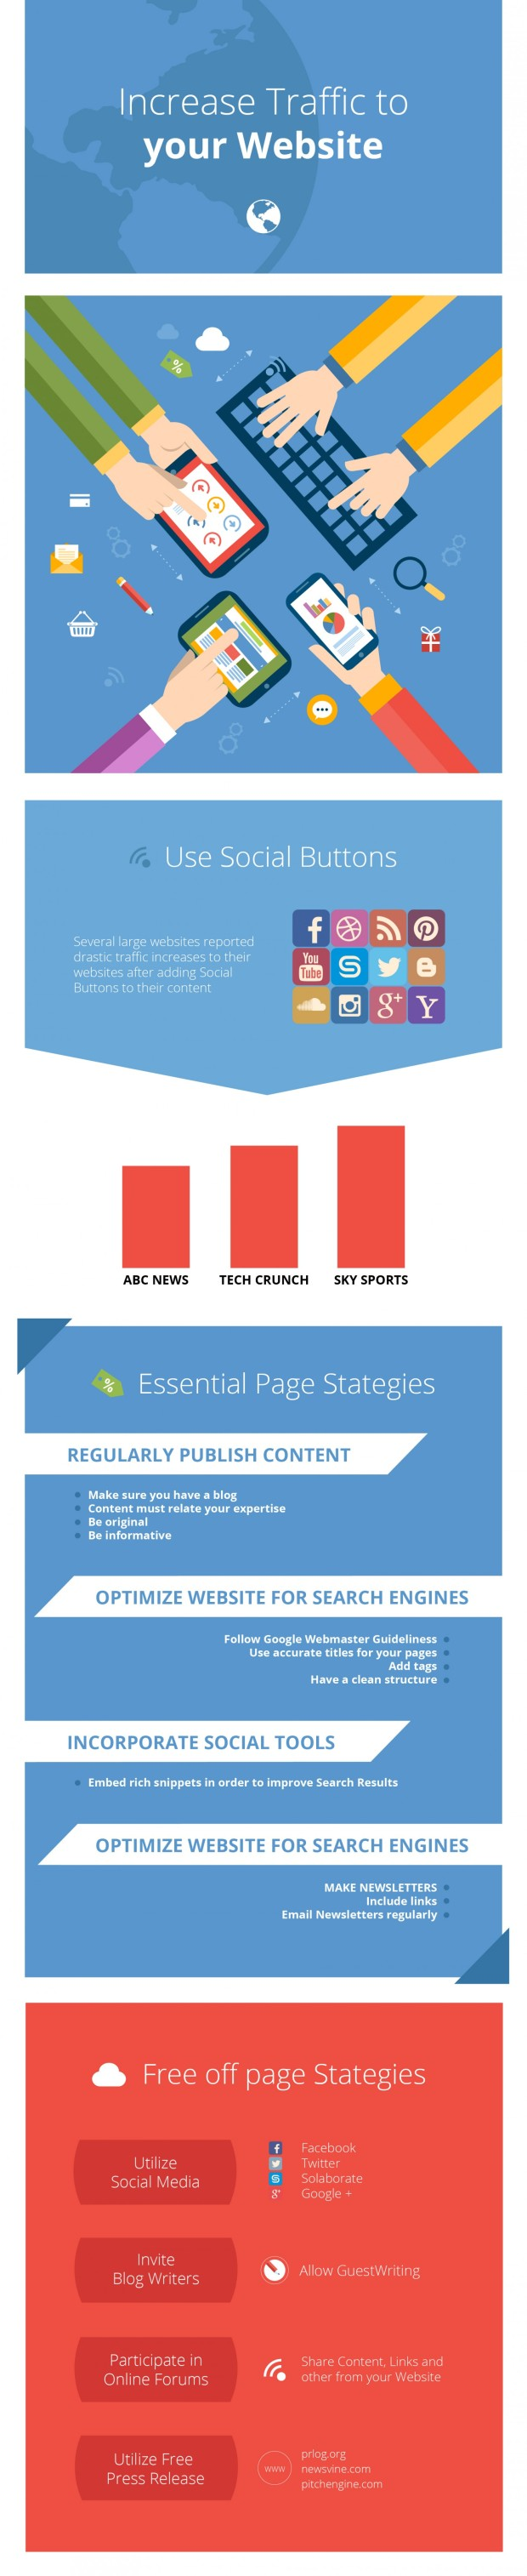 increase-traffic-on-website-socialmediawala-infographic